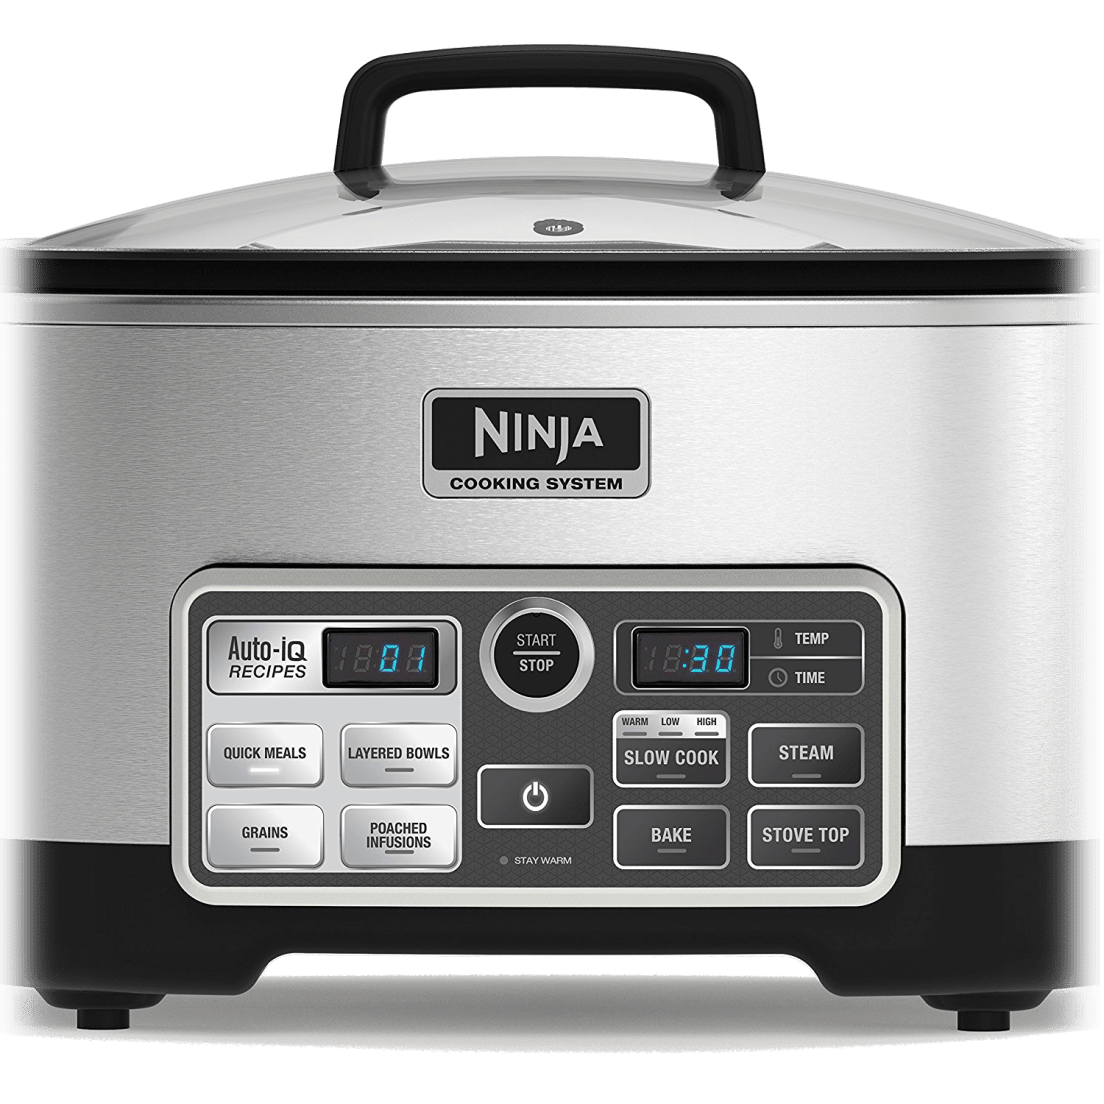 Ninja 4 In 1 Cooking System With Auto Iq Cs960